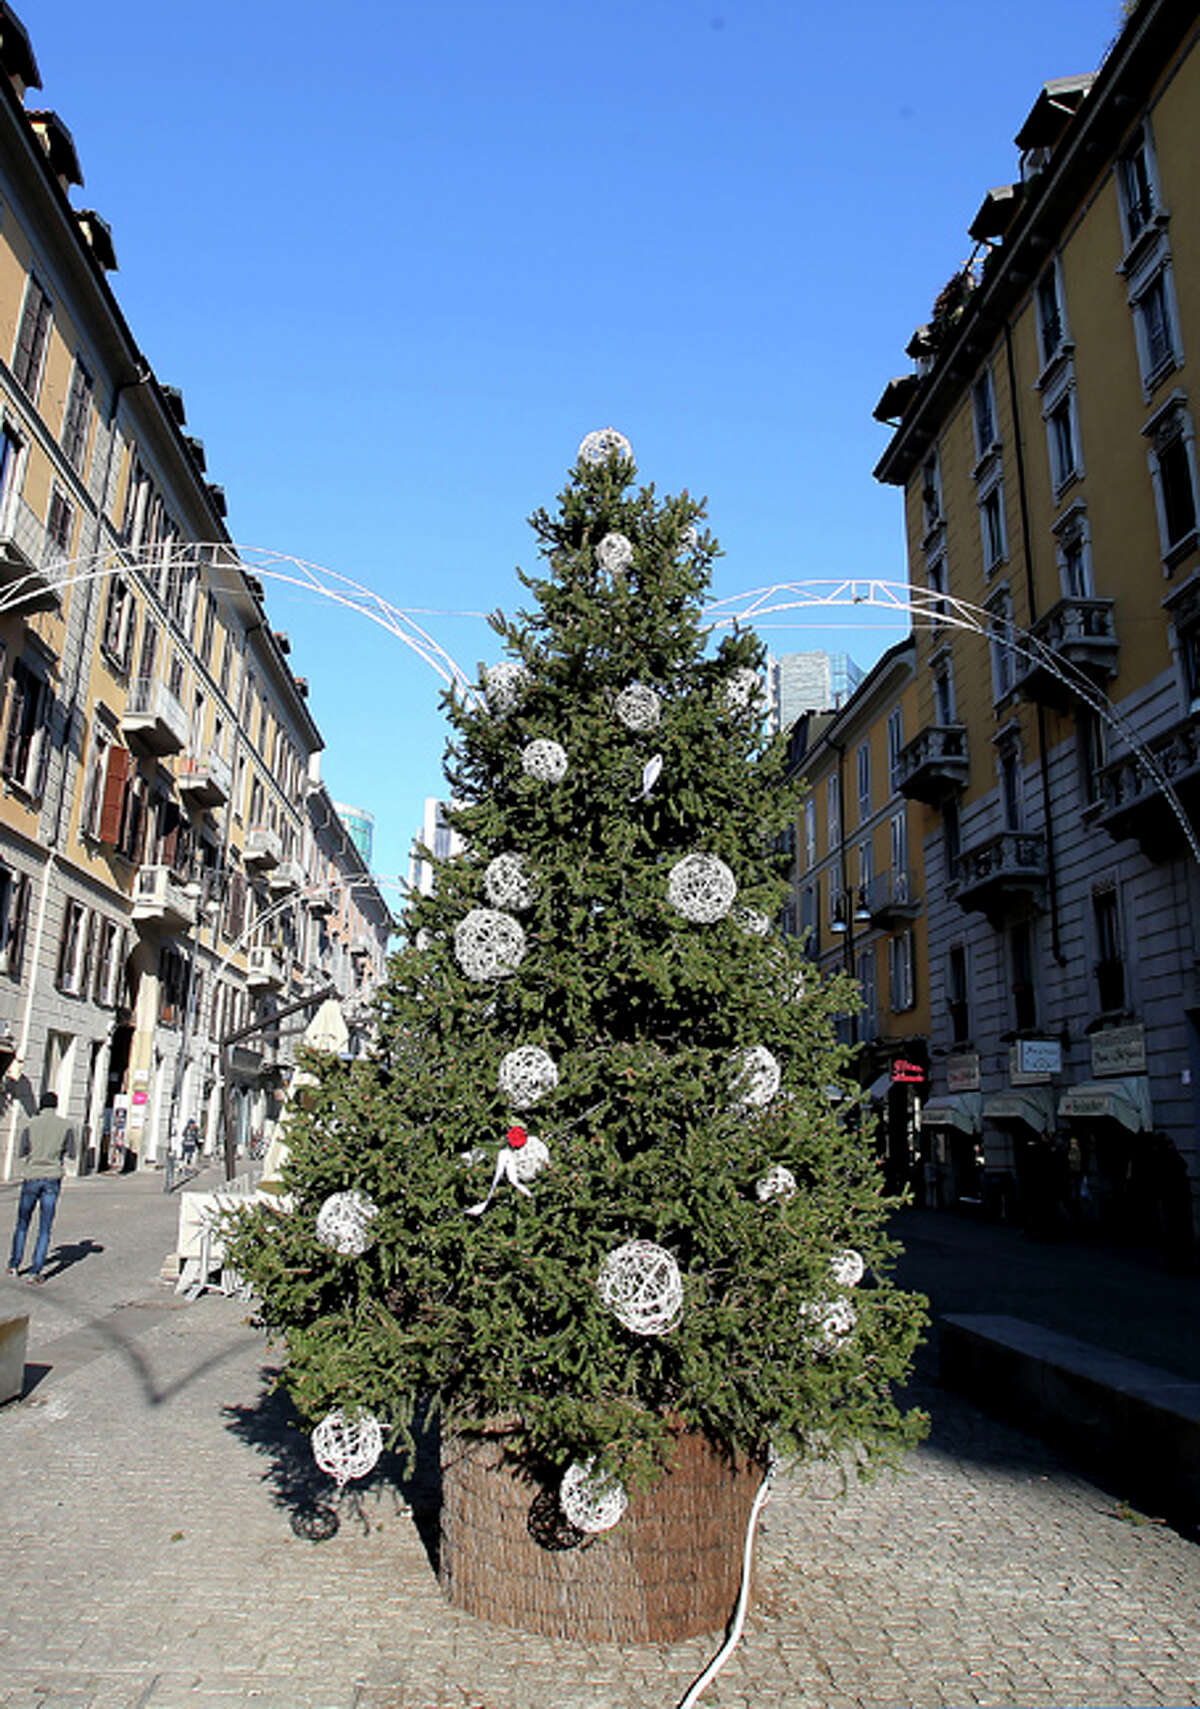 A Christmas tree the was previously adorned with red sex toys is displayed in a street, in Milan, Italy, Friday, Dec. 13, 2013. The provocatively adorned Christmas tree was just too naughty for Milan city officials, who ordered it denuded of its racy red sex toys. The city said in an order dated Thursday that the Christmas season,